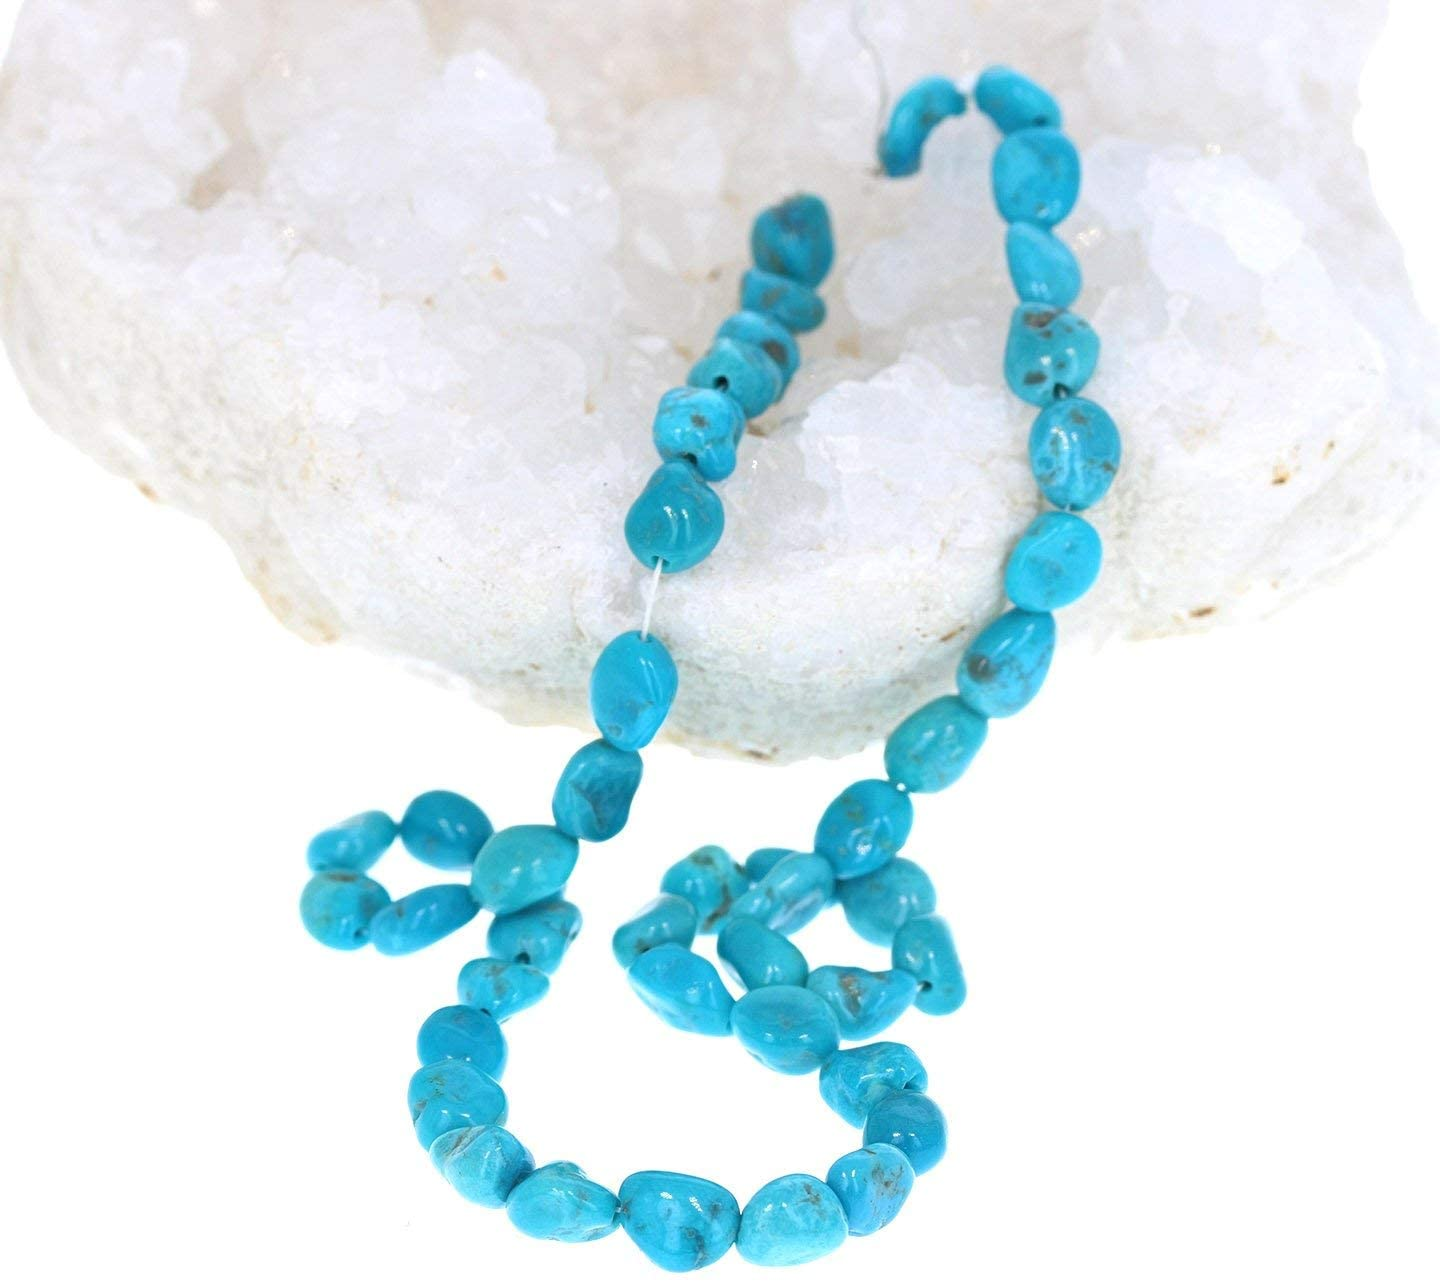 SLEEPING BEAUTY TURQUOISE Beads Potato Shaped 8-9mm